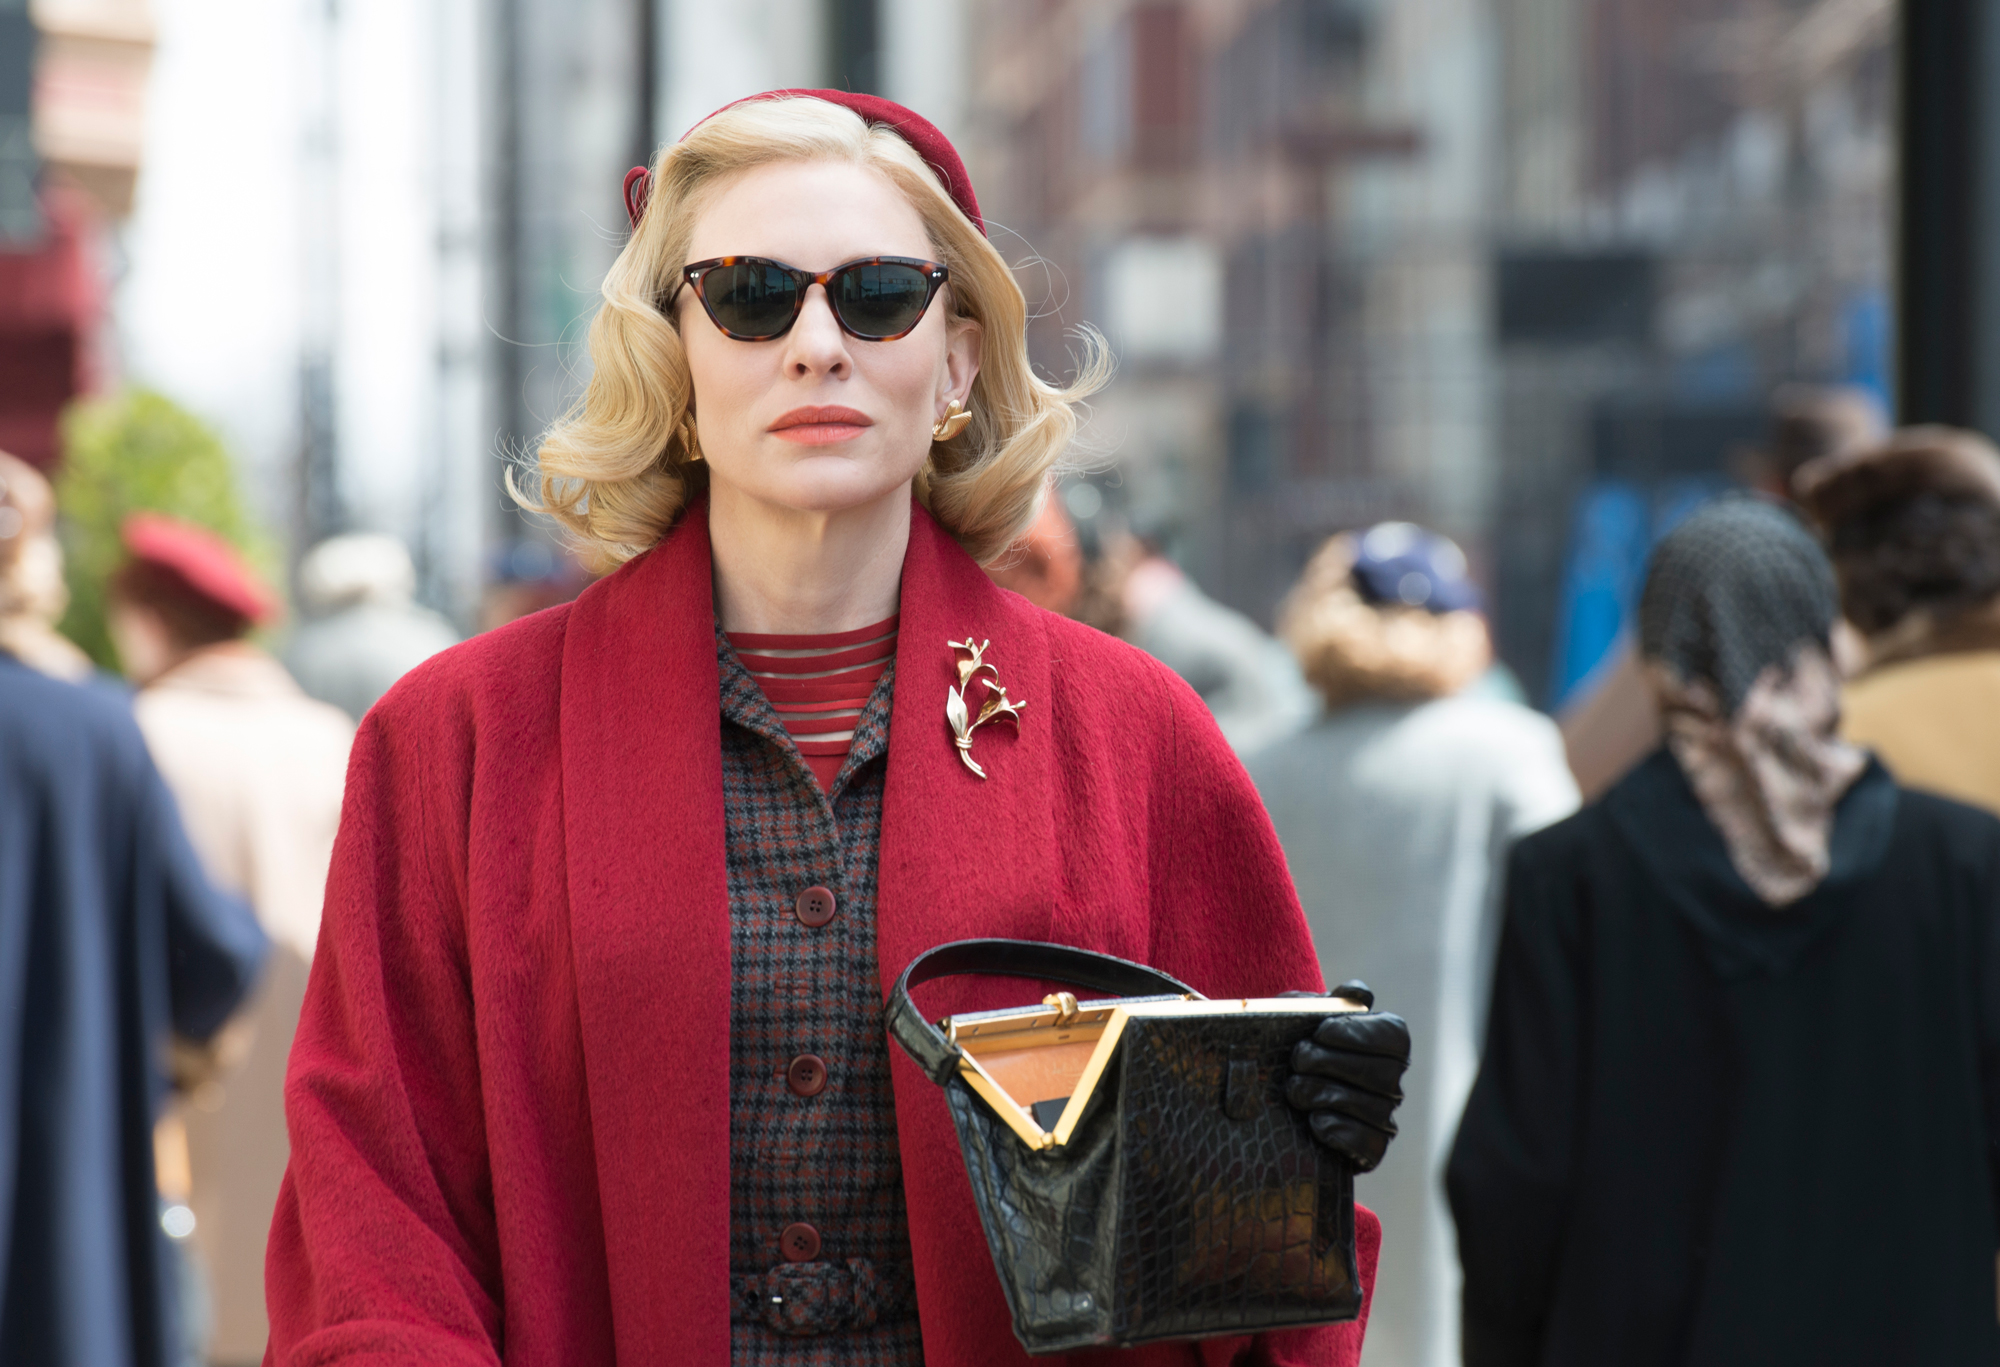 While Carol wears cat-eye sunglasses, they aren't your modern day specs.